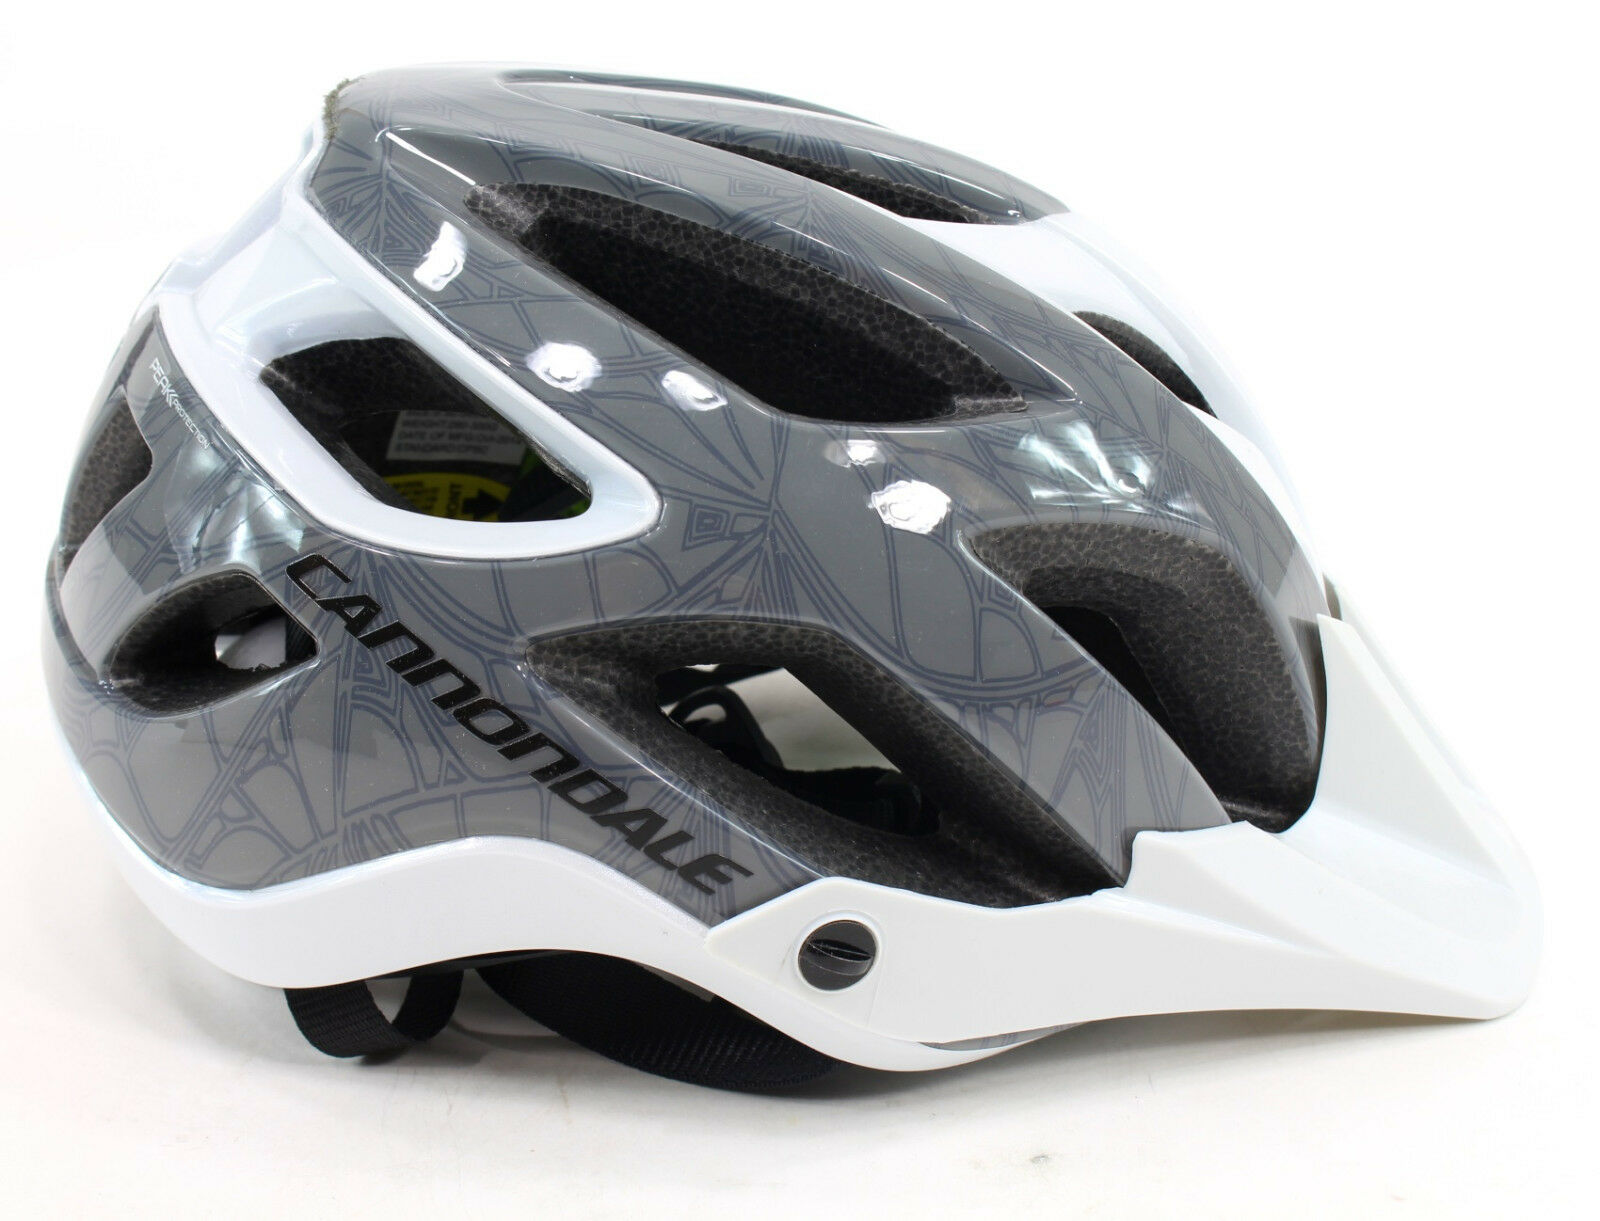 Cannondale  Ryker AM Bicycle Helmet, White, Small, 50-54cm  limit buy